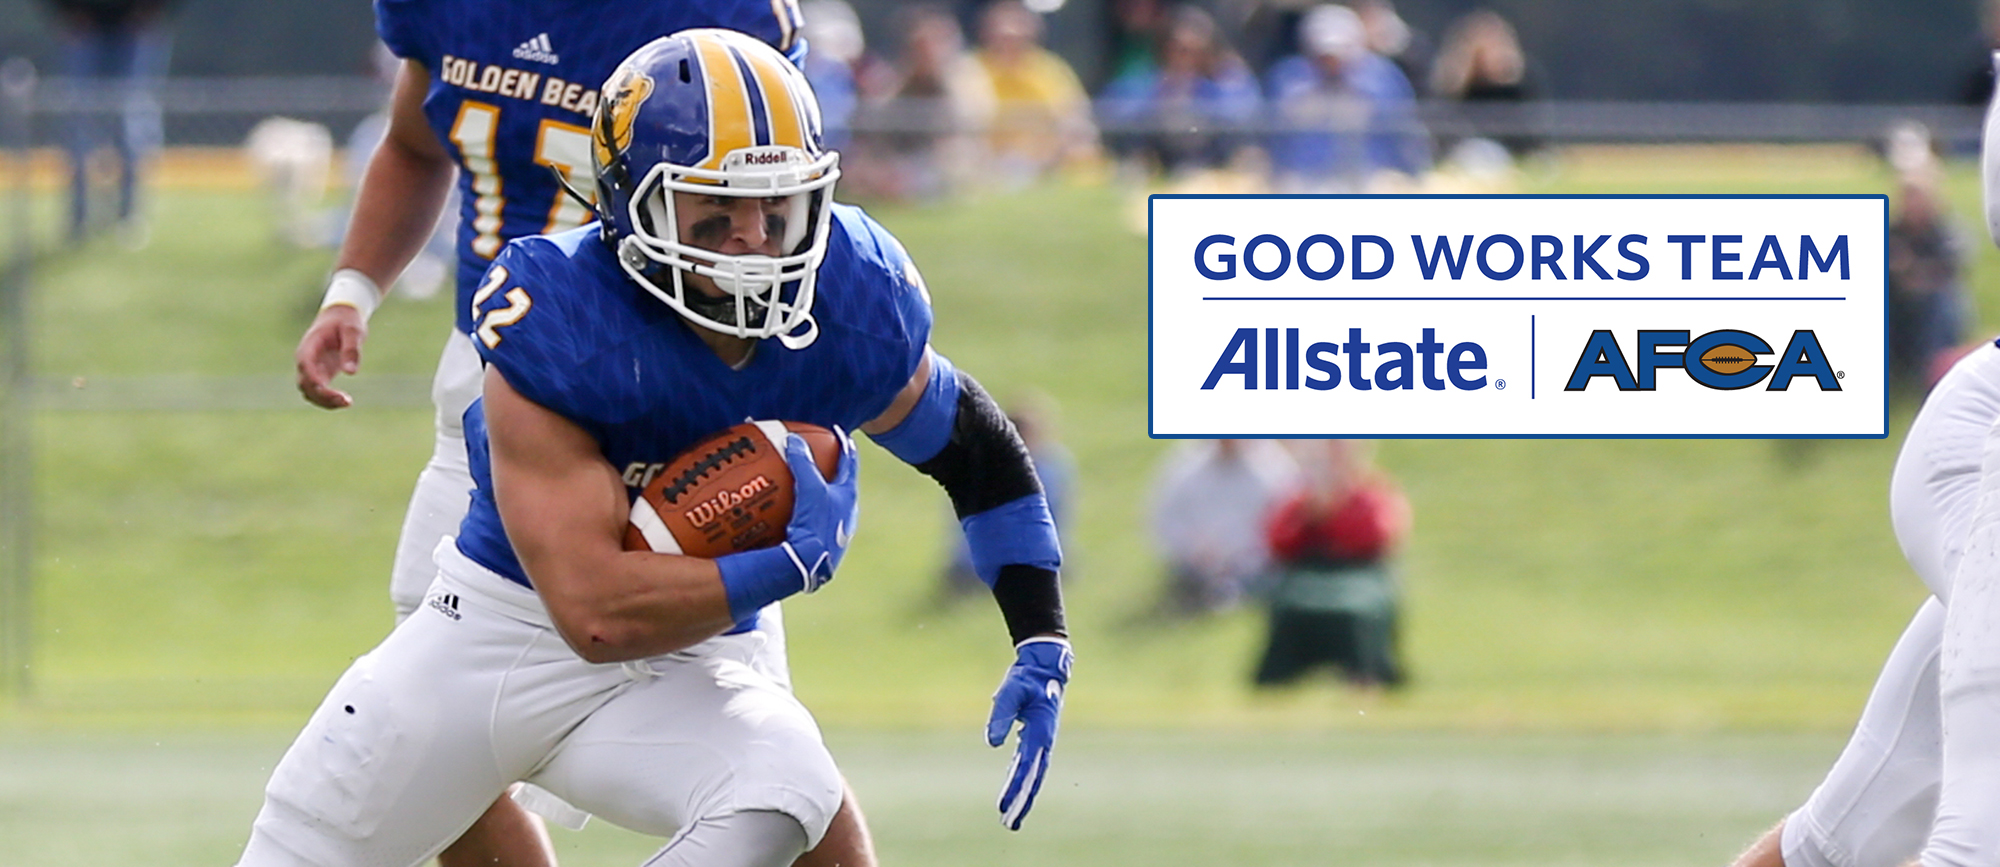 Peter Hoff Nominated for Allstate AFCA Good Works Team